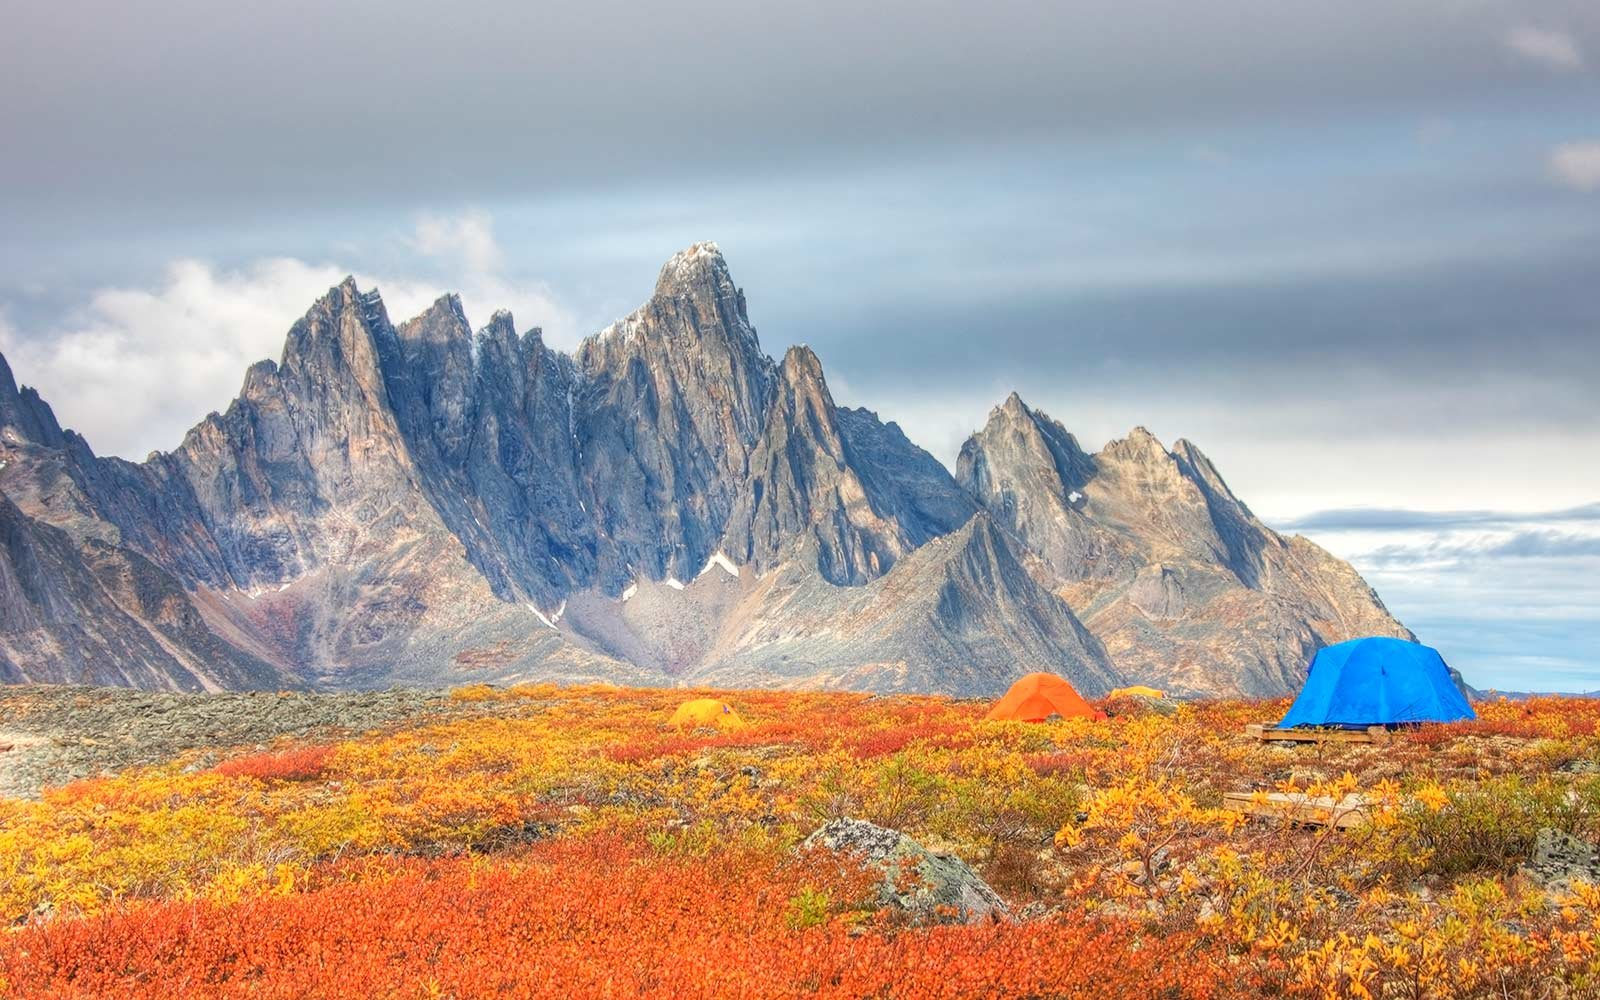 Camping in the Tombstone Valley in front of Tombstone Mountain, Yukon, Canada